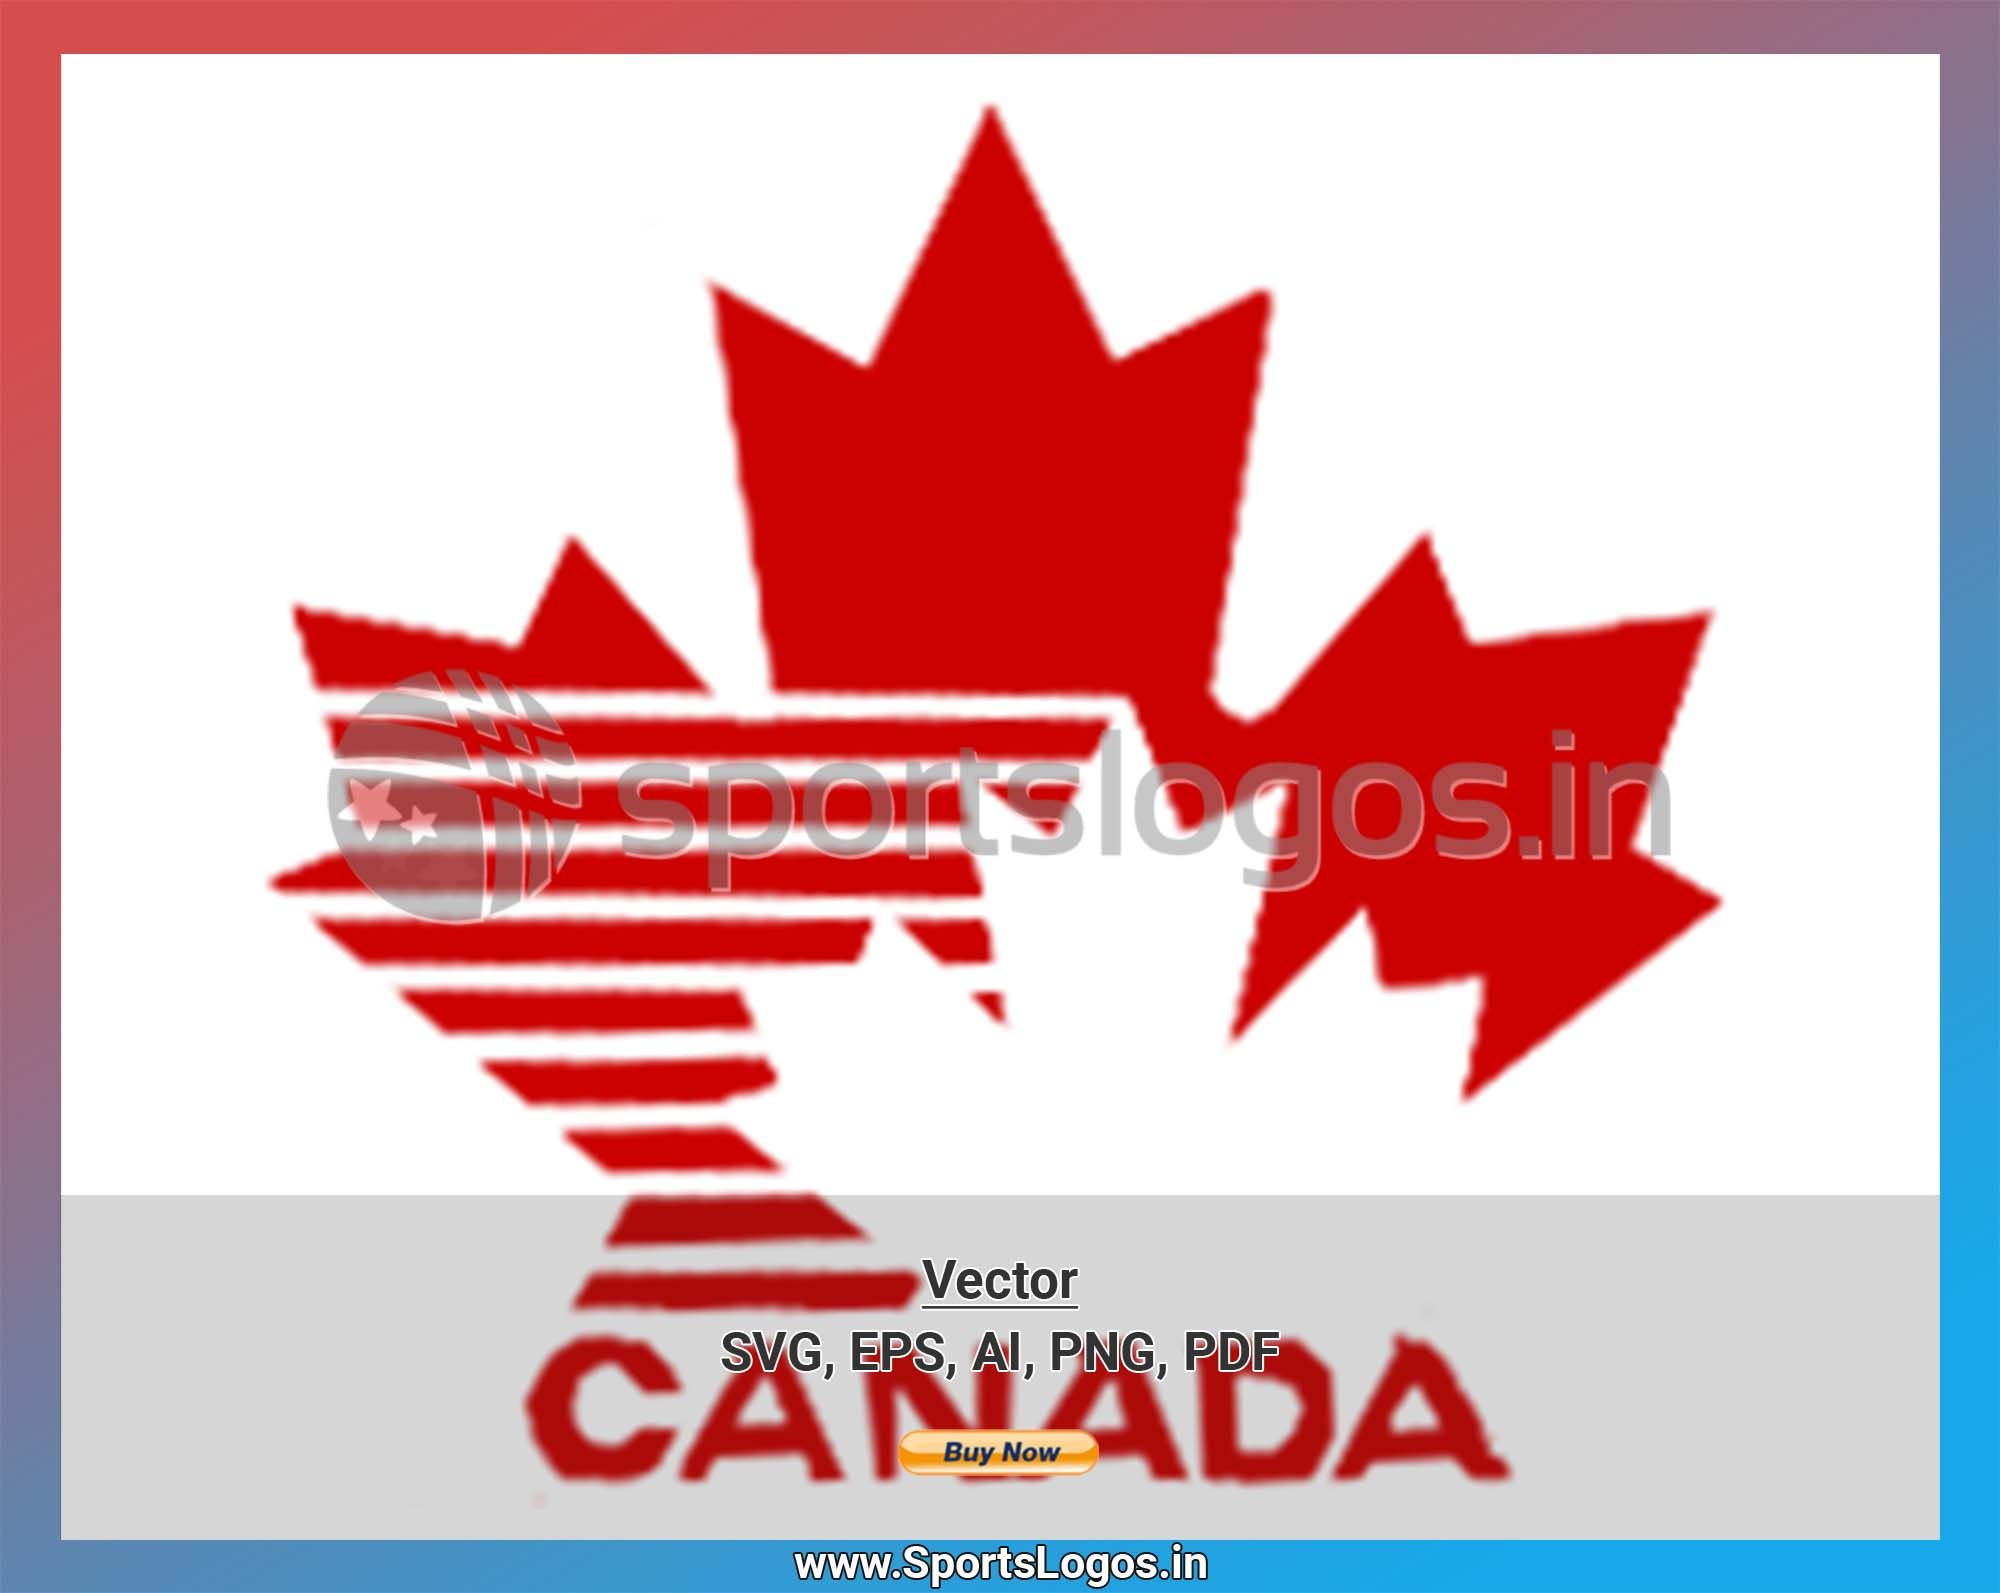 Canada Hockey Sports Vector Svg Logo In 5 Formats Spln000666 Sports Logos Embroidery Vector For Nfl Nba Nhl Mlb Milb And More Embroidery Logo Vector Svg Sport Hockey